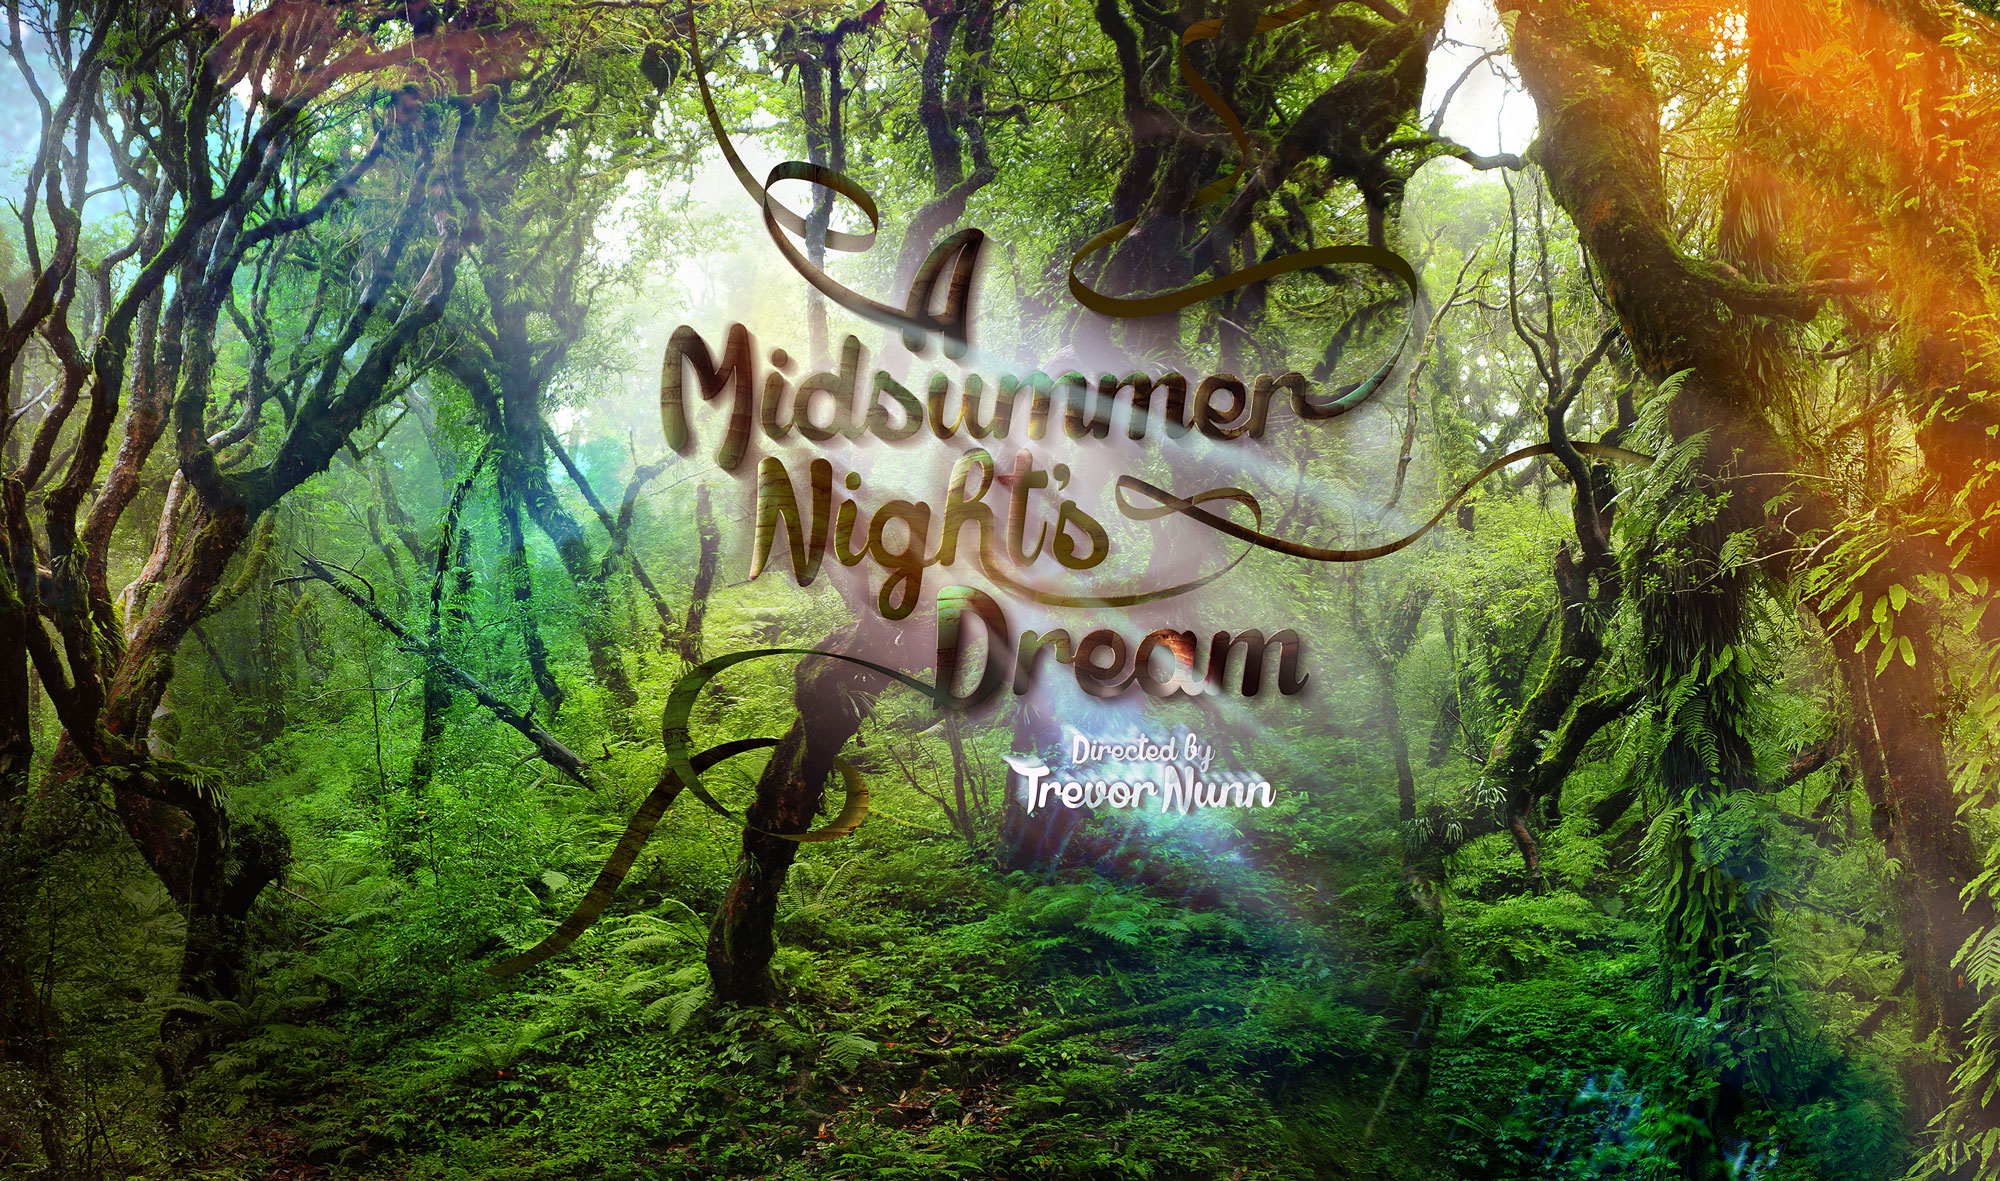 character analysis in a midsummer night dream by william shakespeare William shakespeare's play, a midsummer night's dream, is a comedic tale that follows the love quartet between hermia, lysander, demetrius, and helena shakespeare places a special emphasis on the .